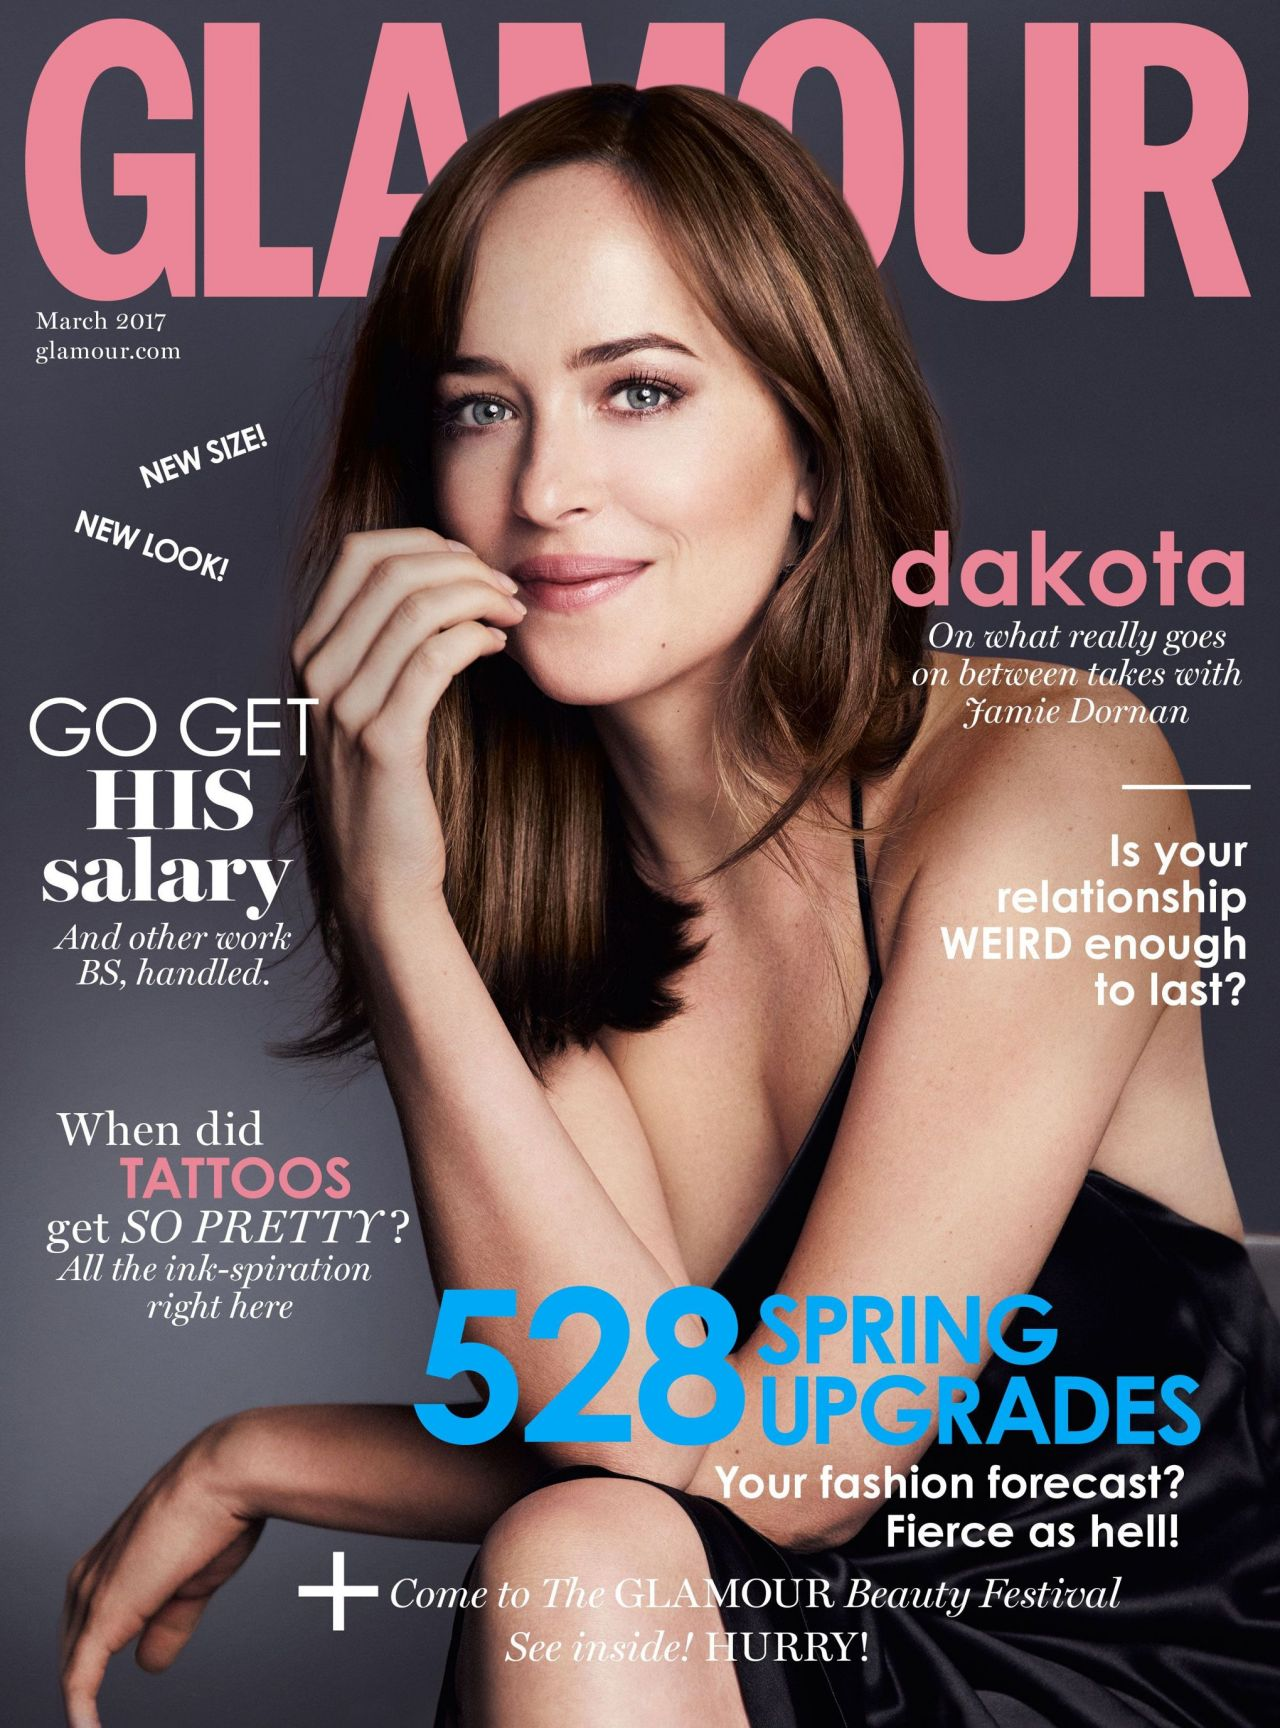 Glamour Magazine UK March 2017 Cover And